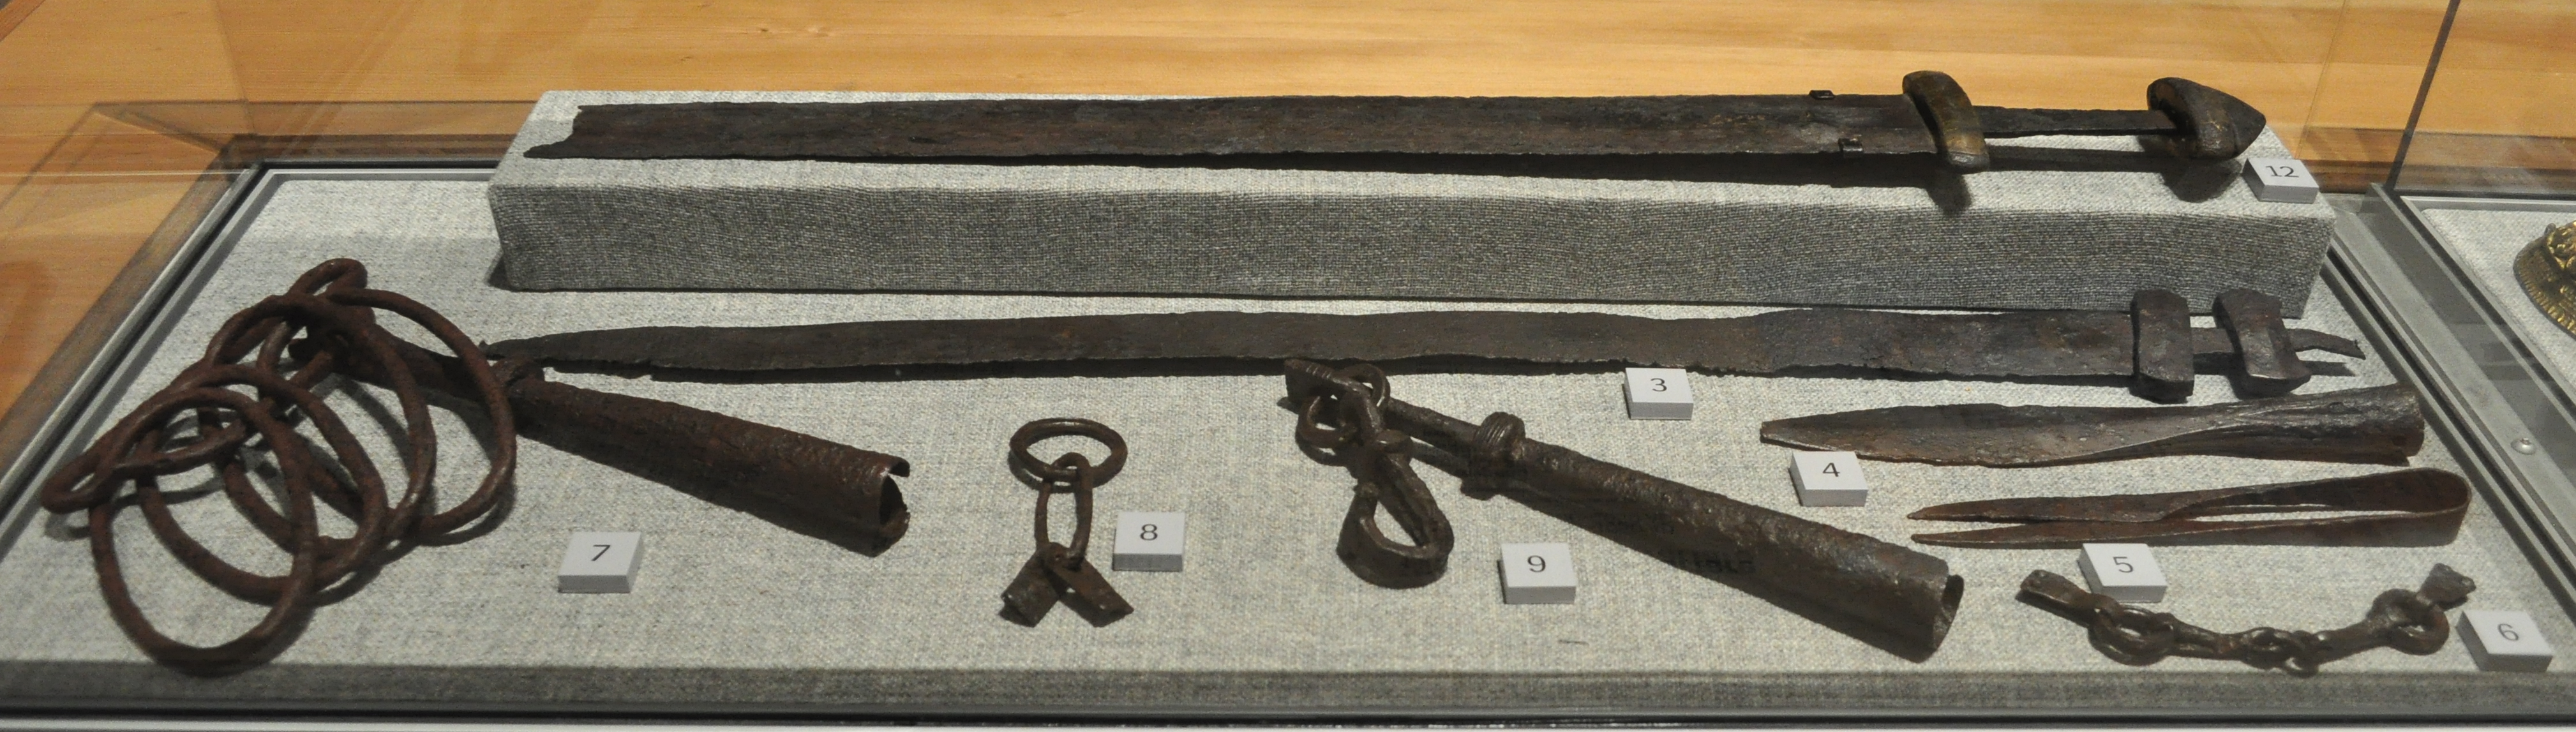 File Nordic Museum Contents Of A Viking Grave And Other Warfare Related Items 01 Jpg Wikimedia Commons